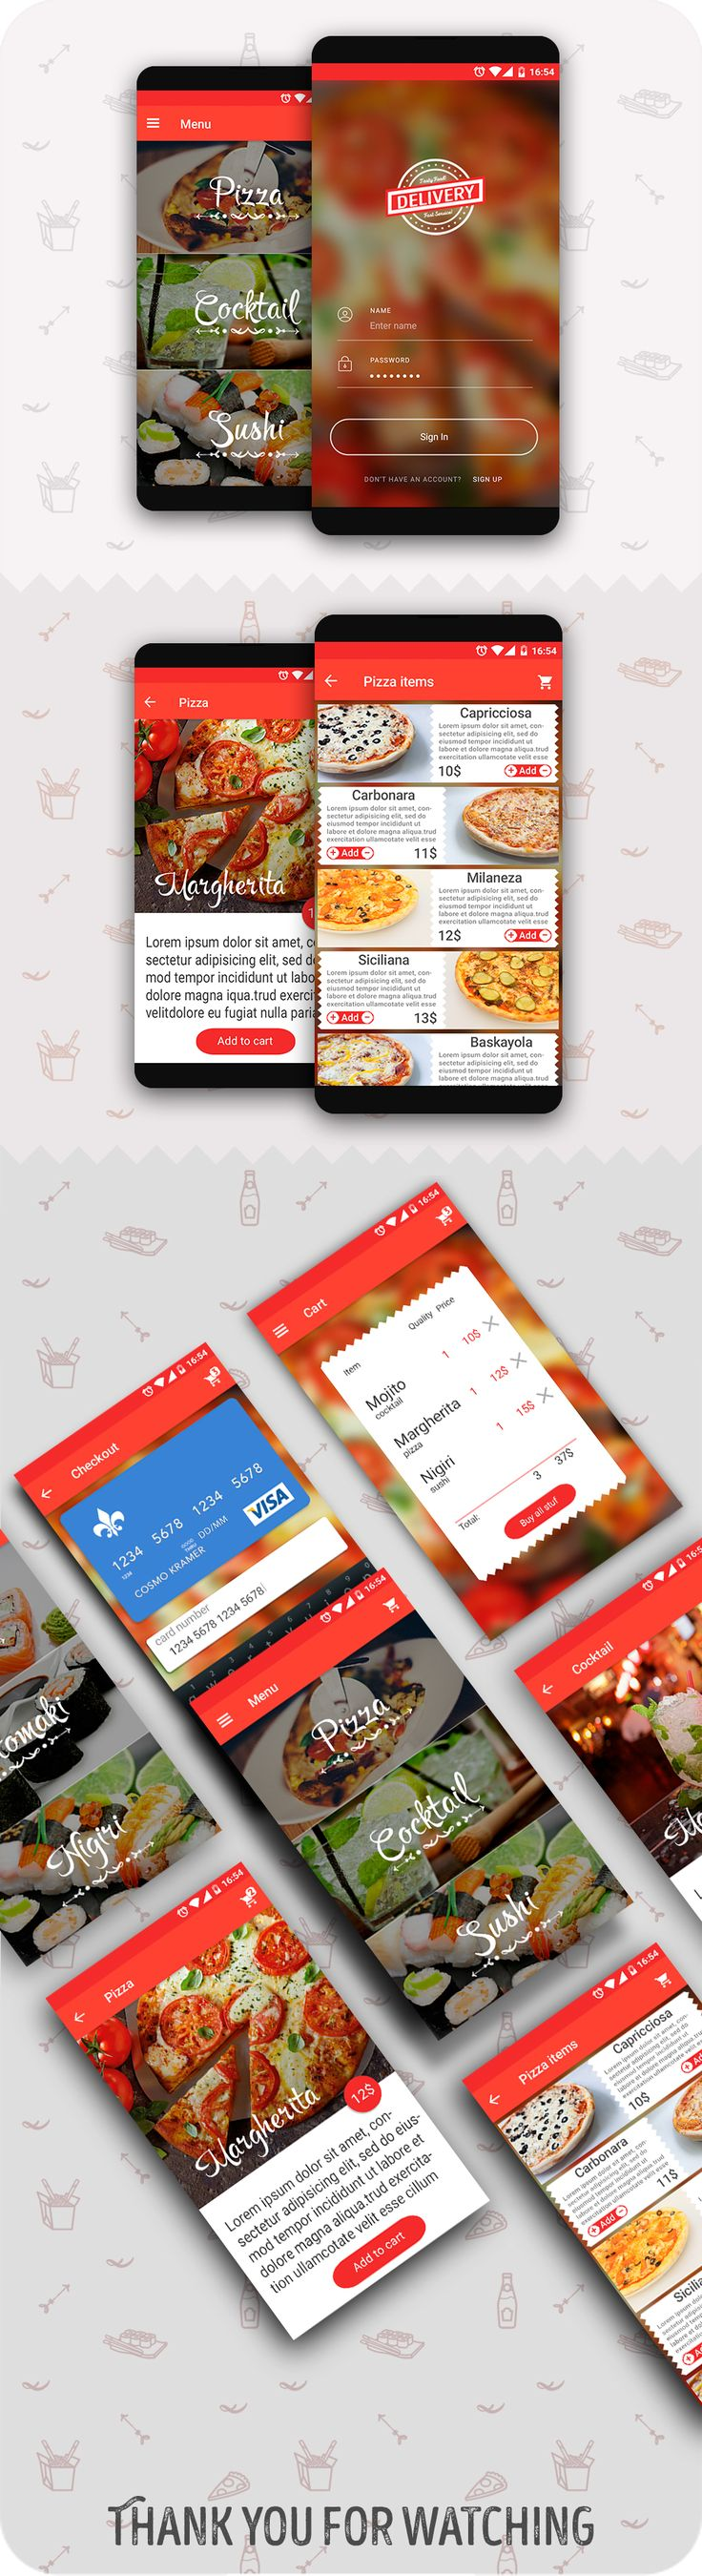 Delivery food app on Behance